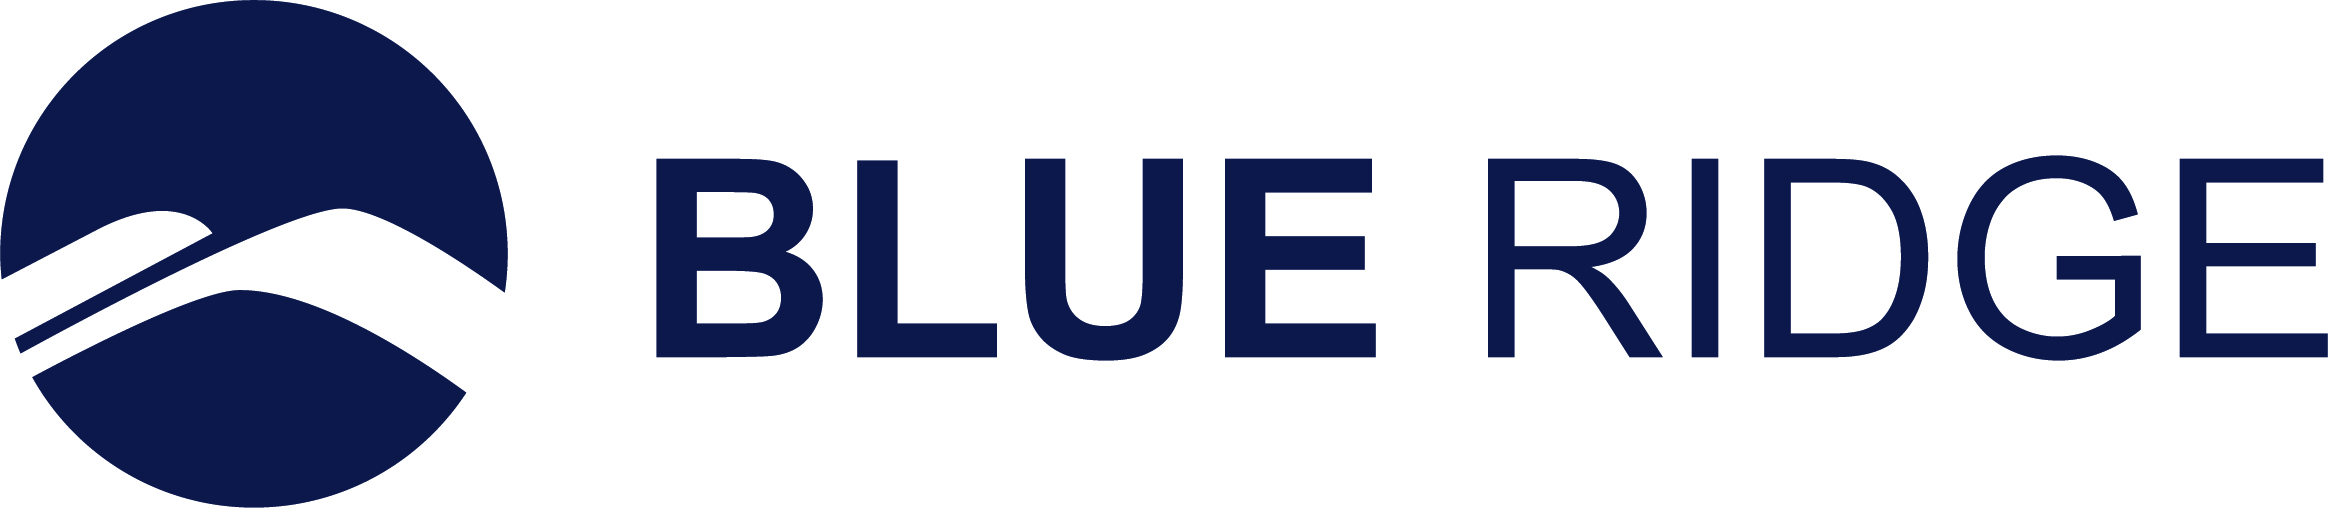 Blue Ridge Announces Partnership with Servicegrossistene AS to Improve Forecast Accuracy and Supply Chain Planning